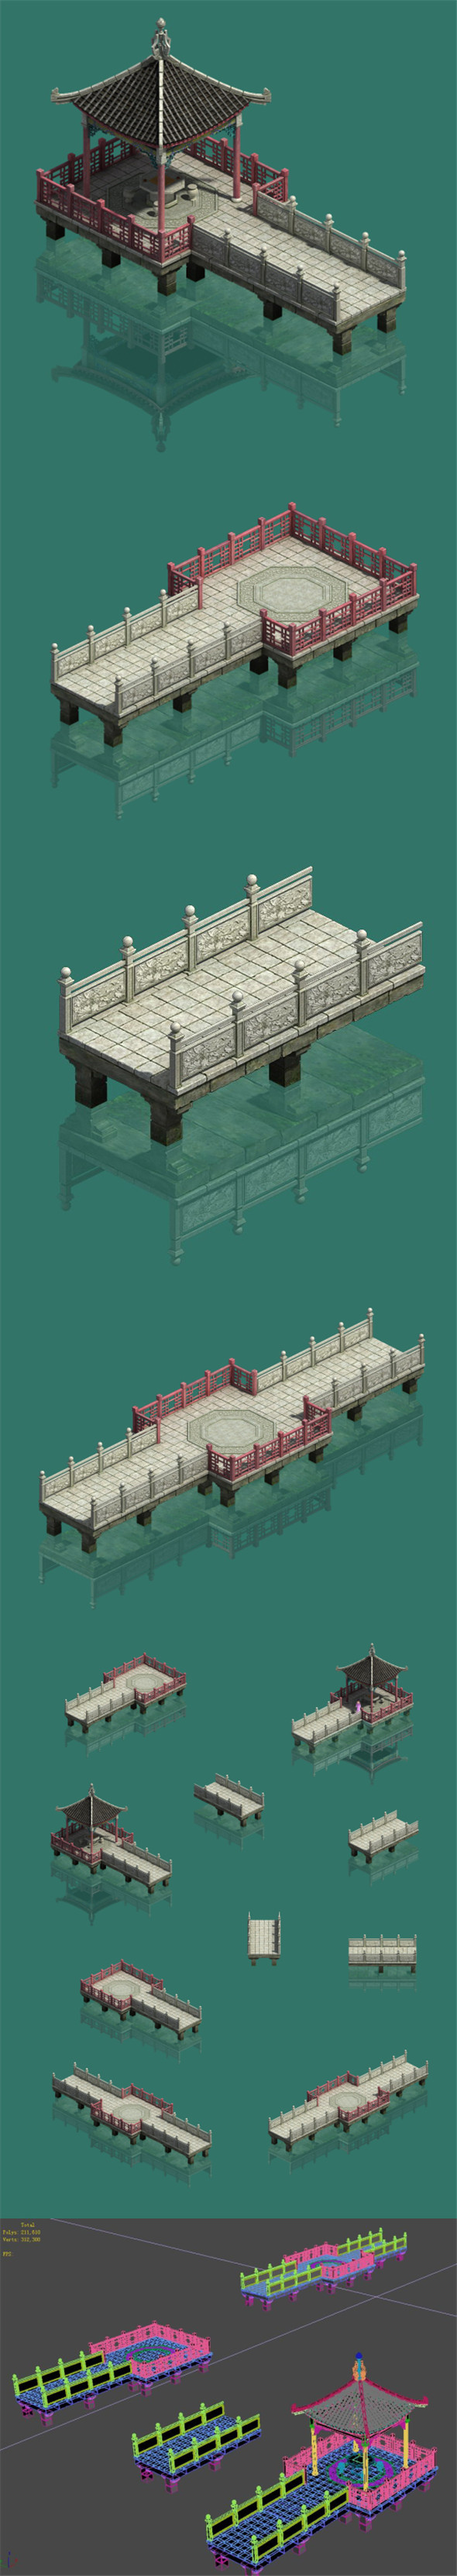 Large City - Water Corridor Stone Bridge - 3DOcean Item for Sale